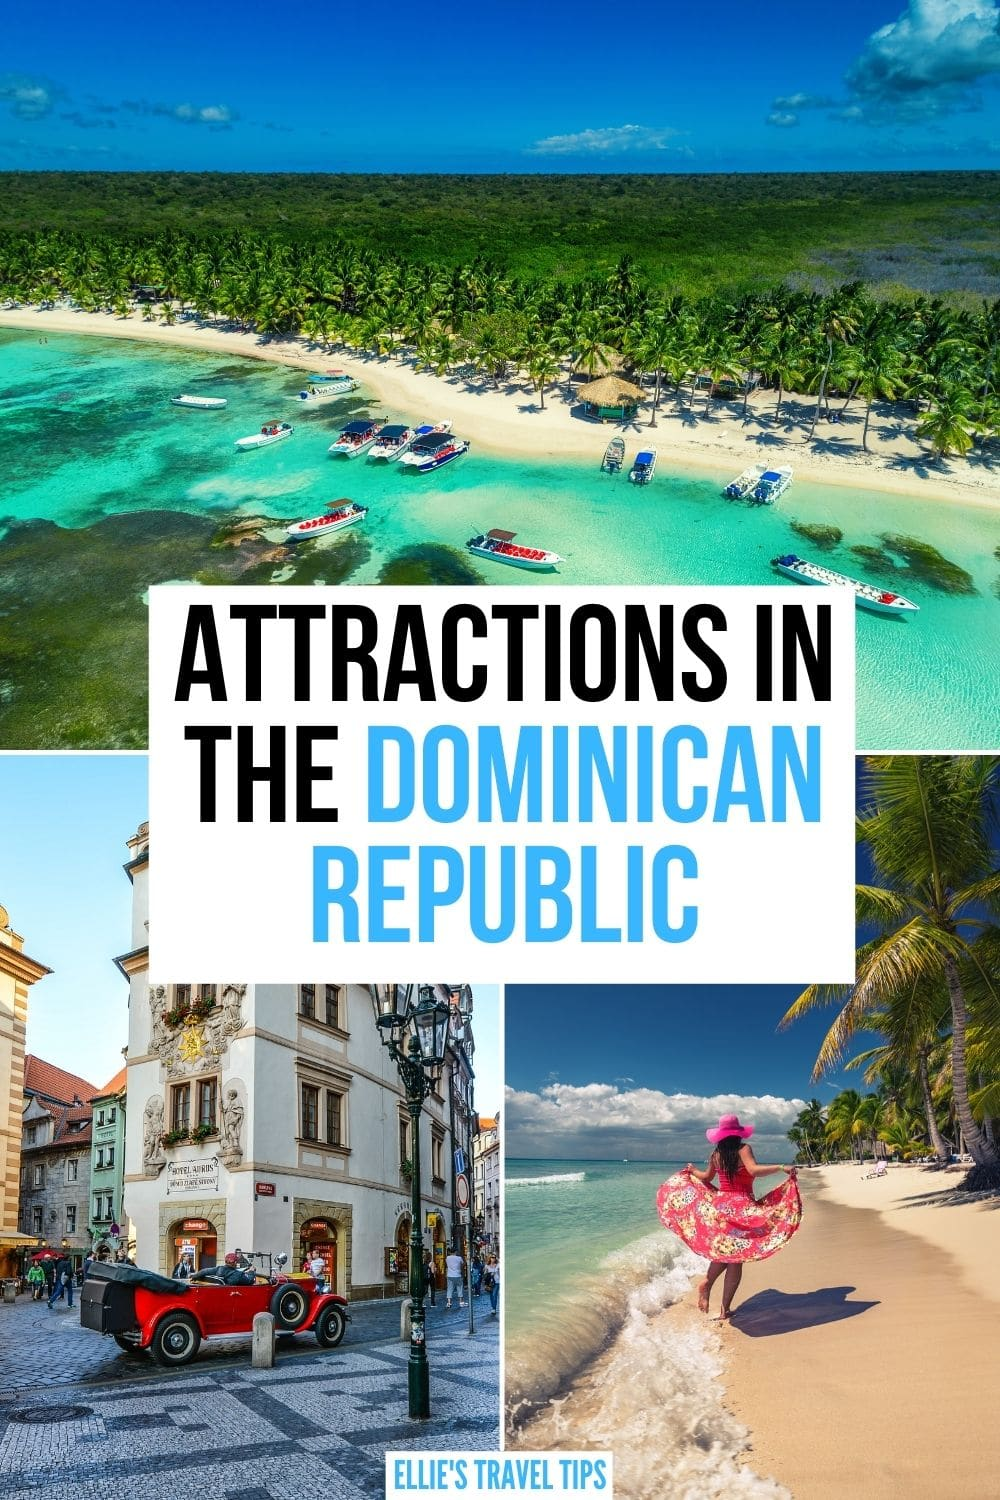 attractions in the dominican republic